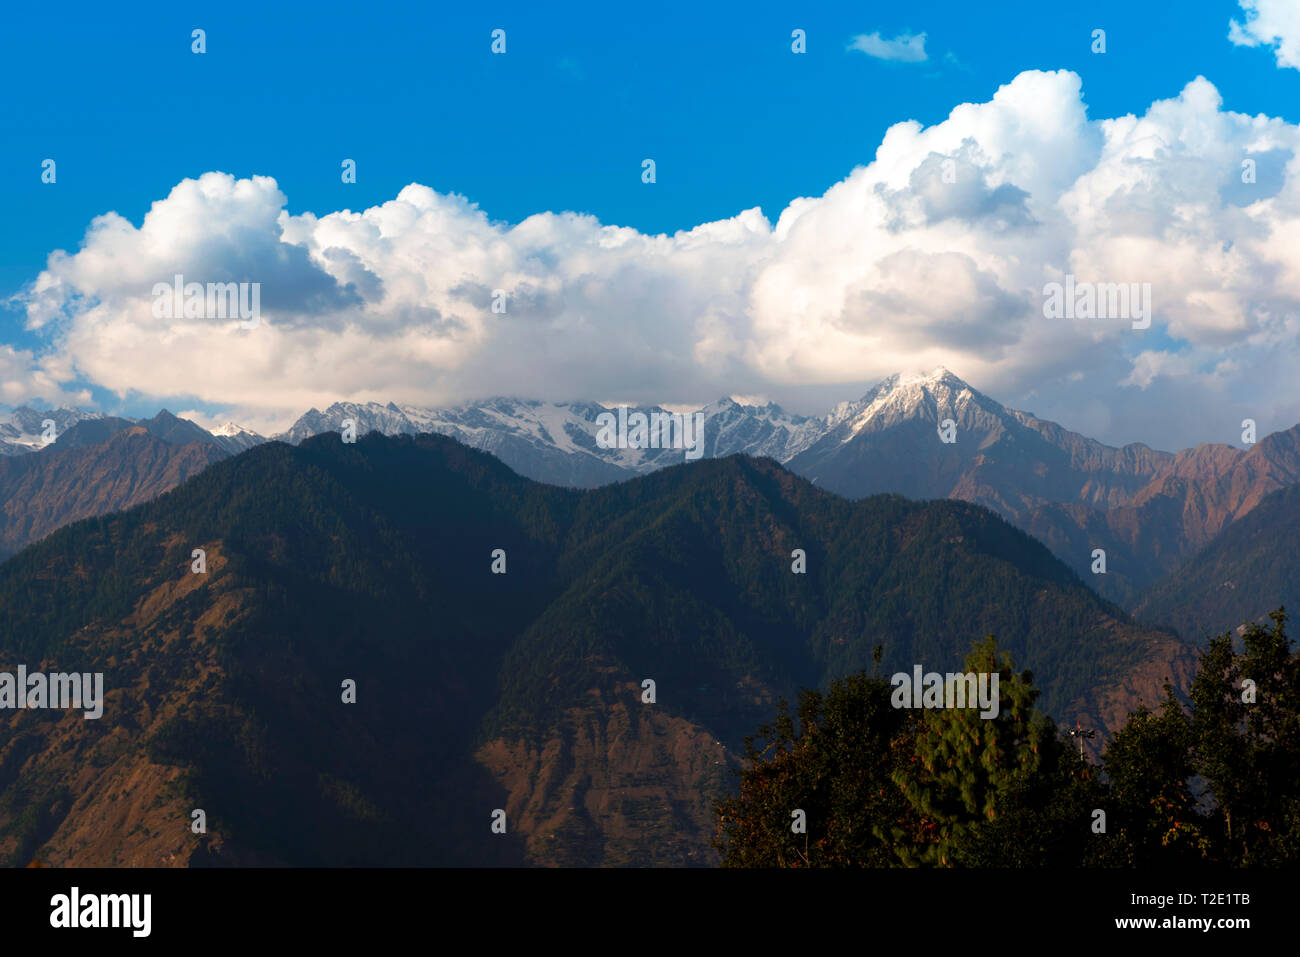 Himalayan mountains in Himachal Pradesh, India - Stock Image